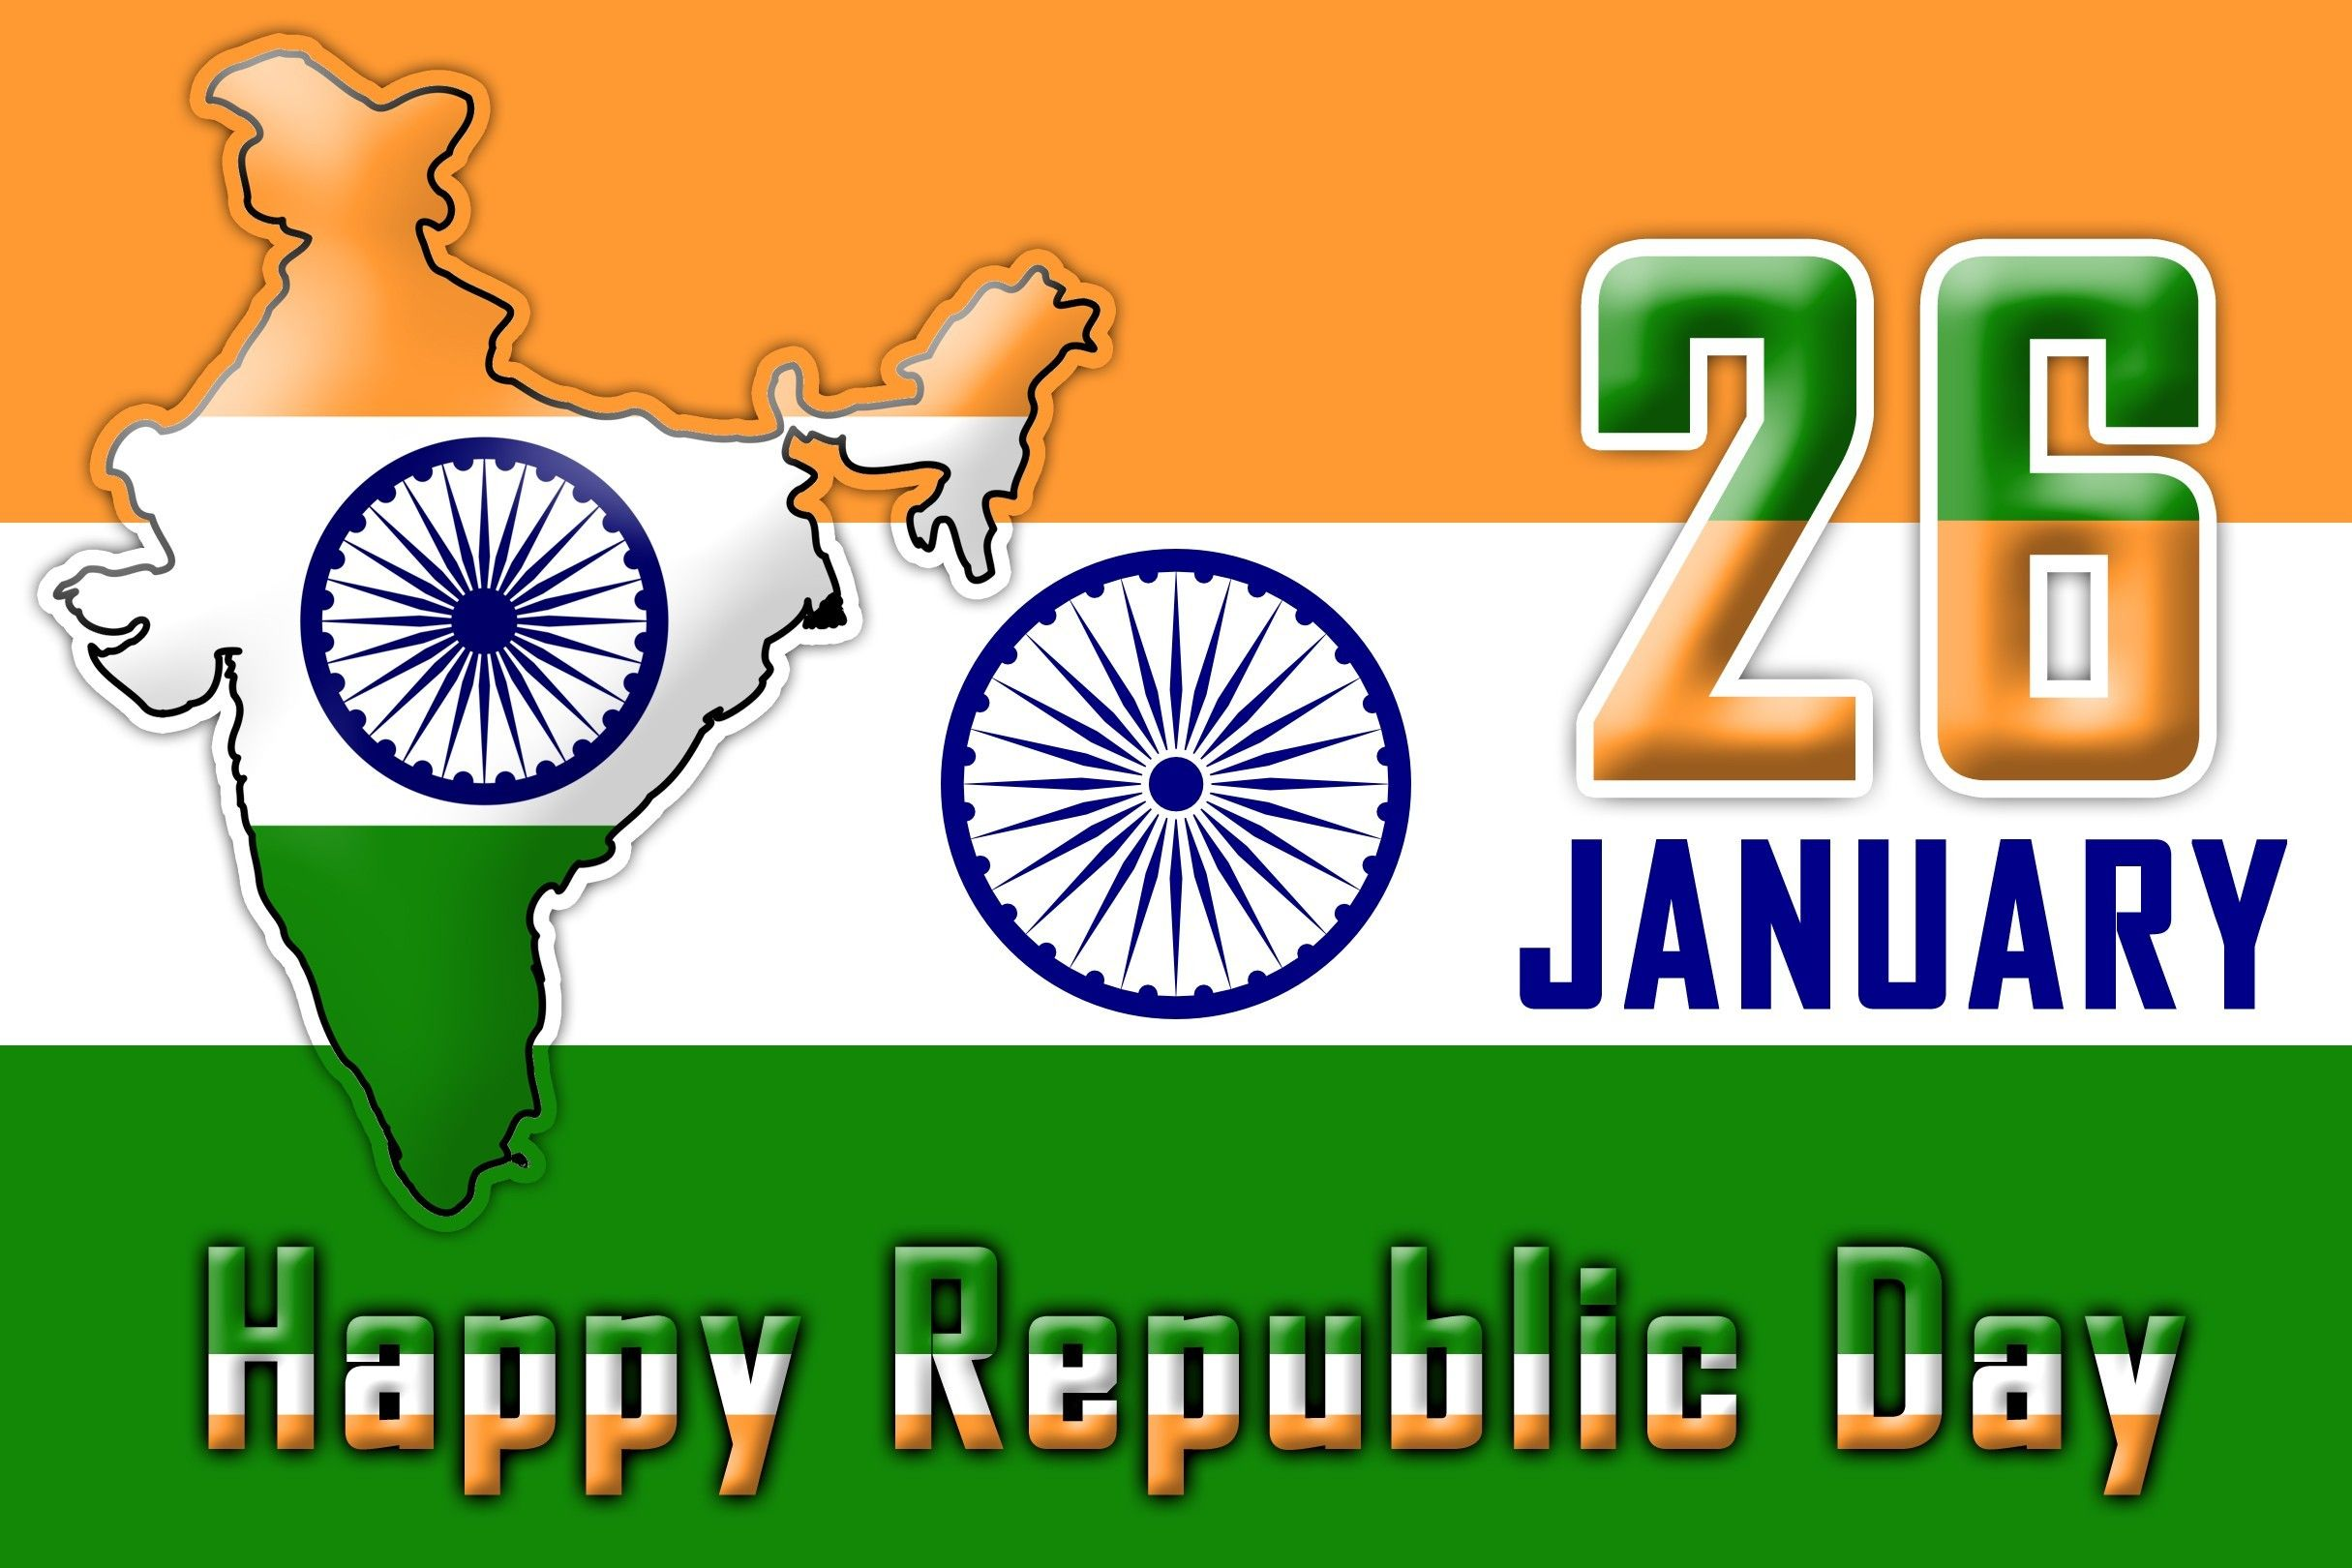 26 January Wisges Card Image For Facebook Happy Republic Day Of India Greetings Sms Messages And Quote Wallpape Republic Day Republic Day Message Wishes Images